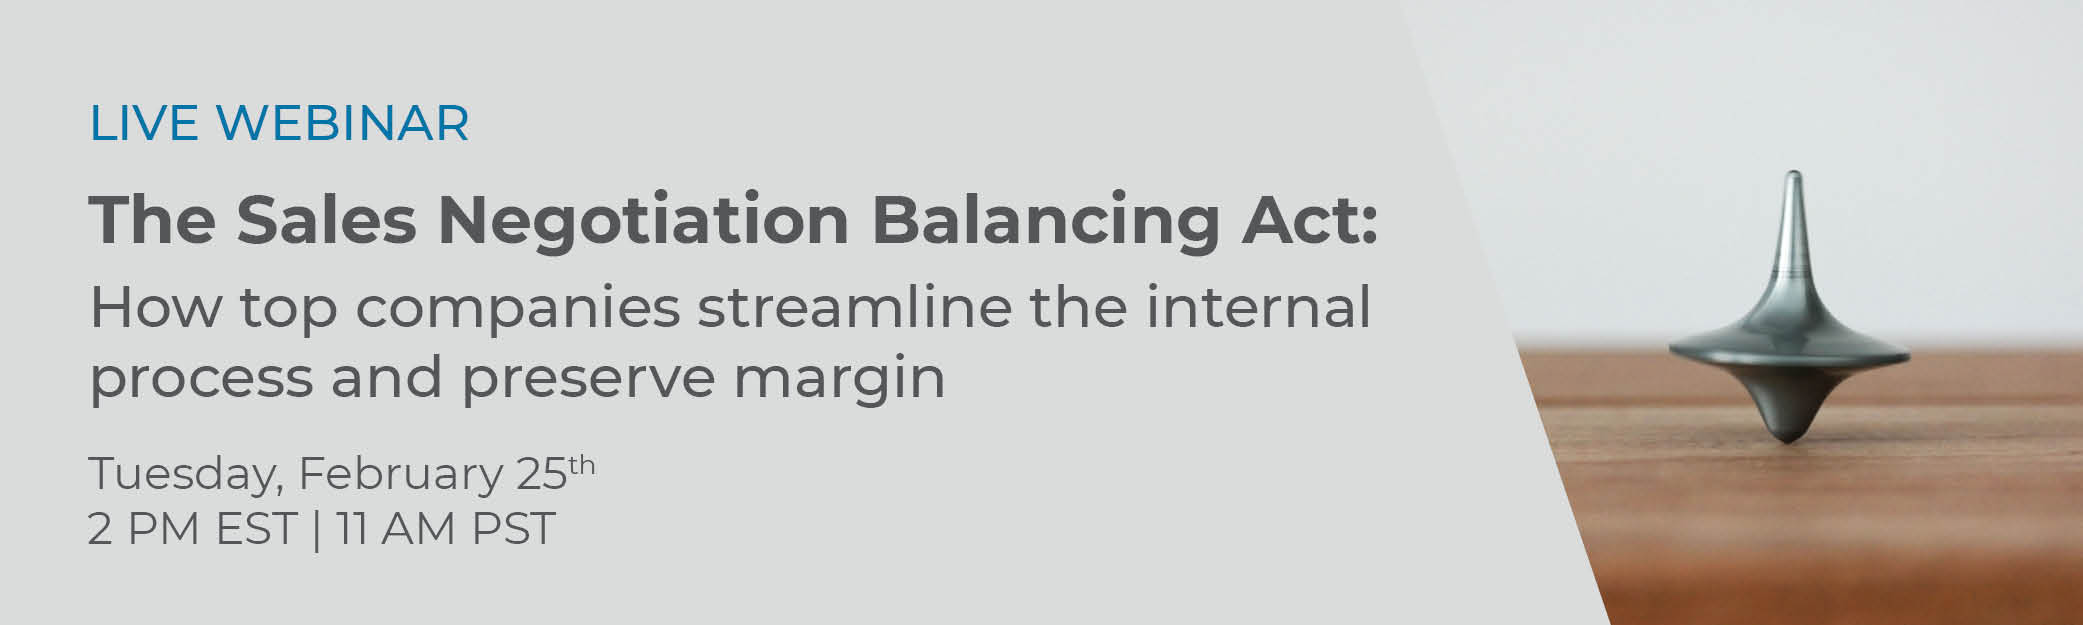 Negotiation Balancing Act Webinar Banner Graphic [updated]